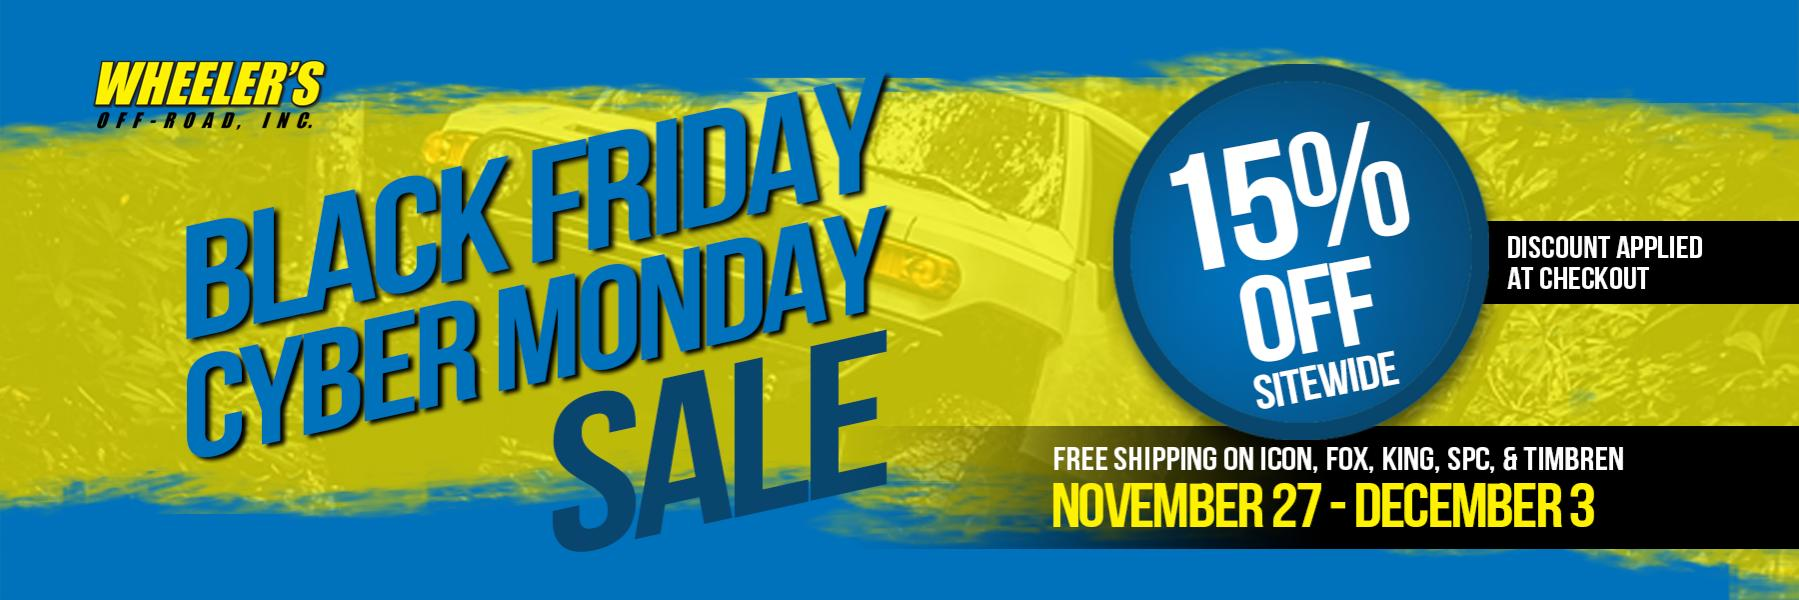 Wheeler's Off-Road Black Friday Sale 2019!-wor-black-friday-website-banner-jpg